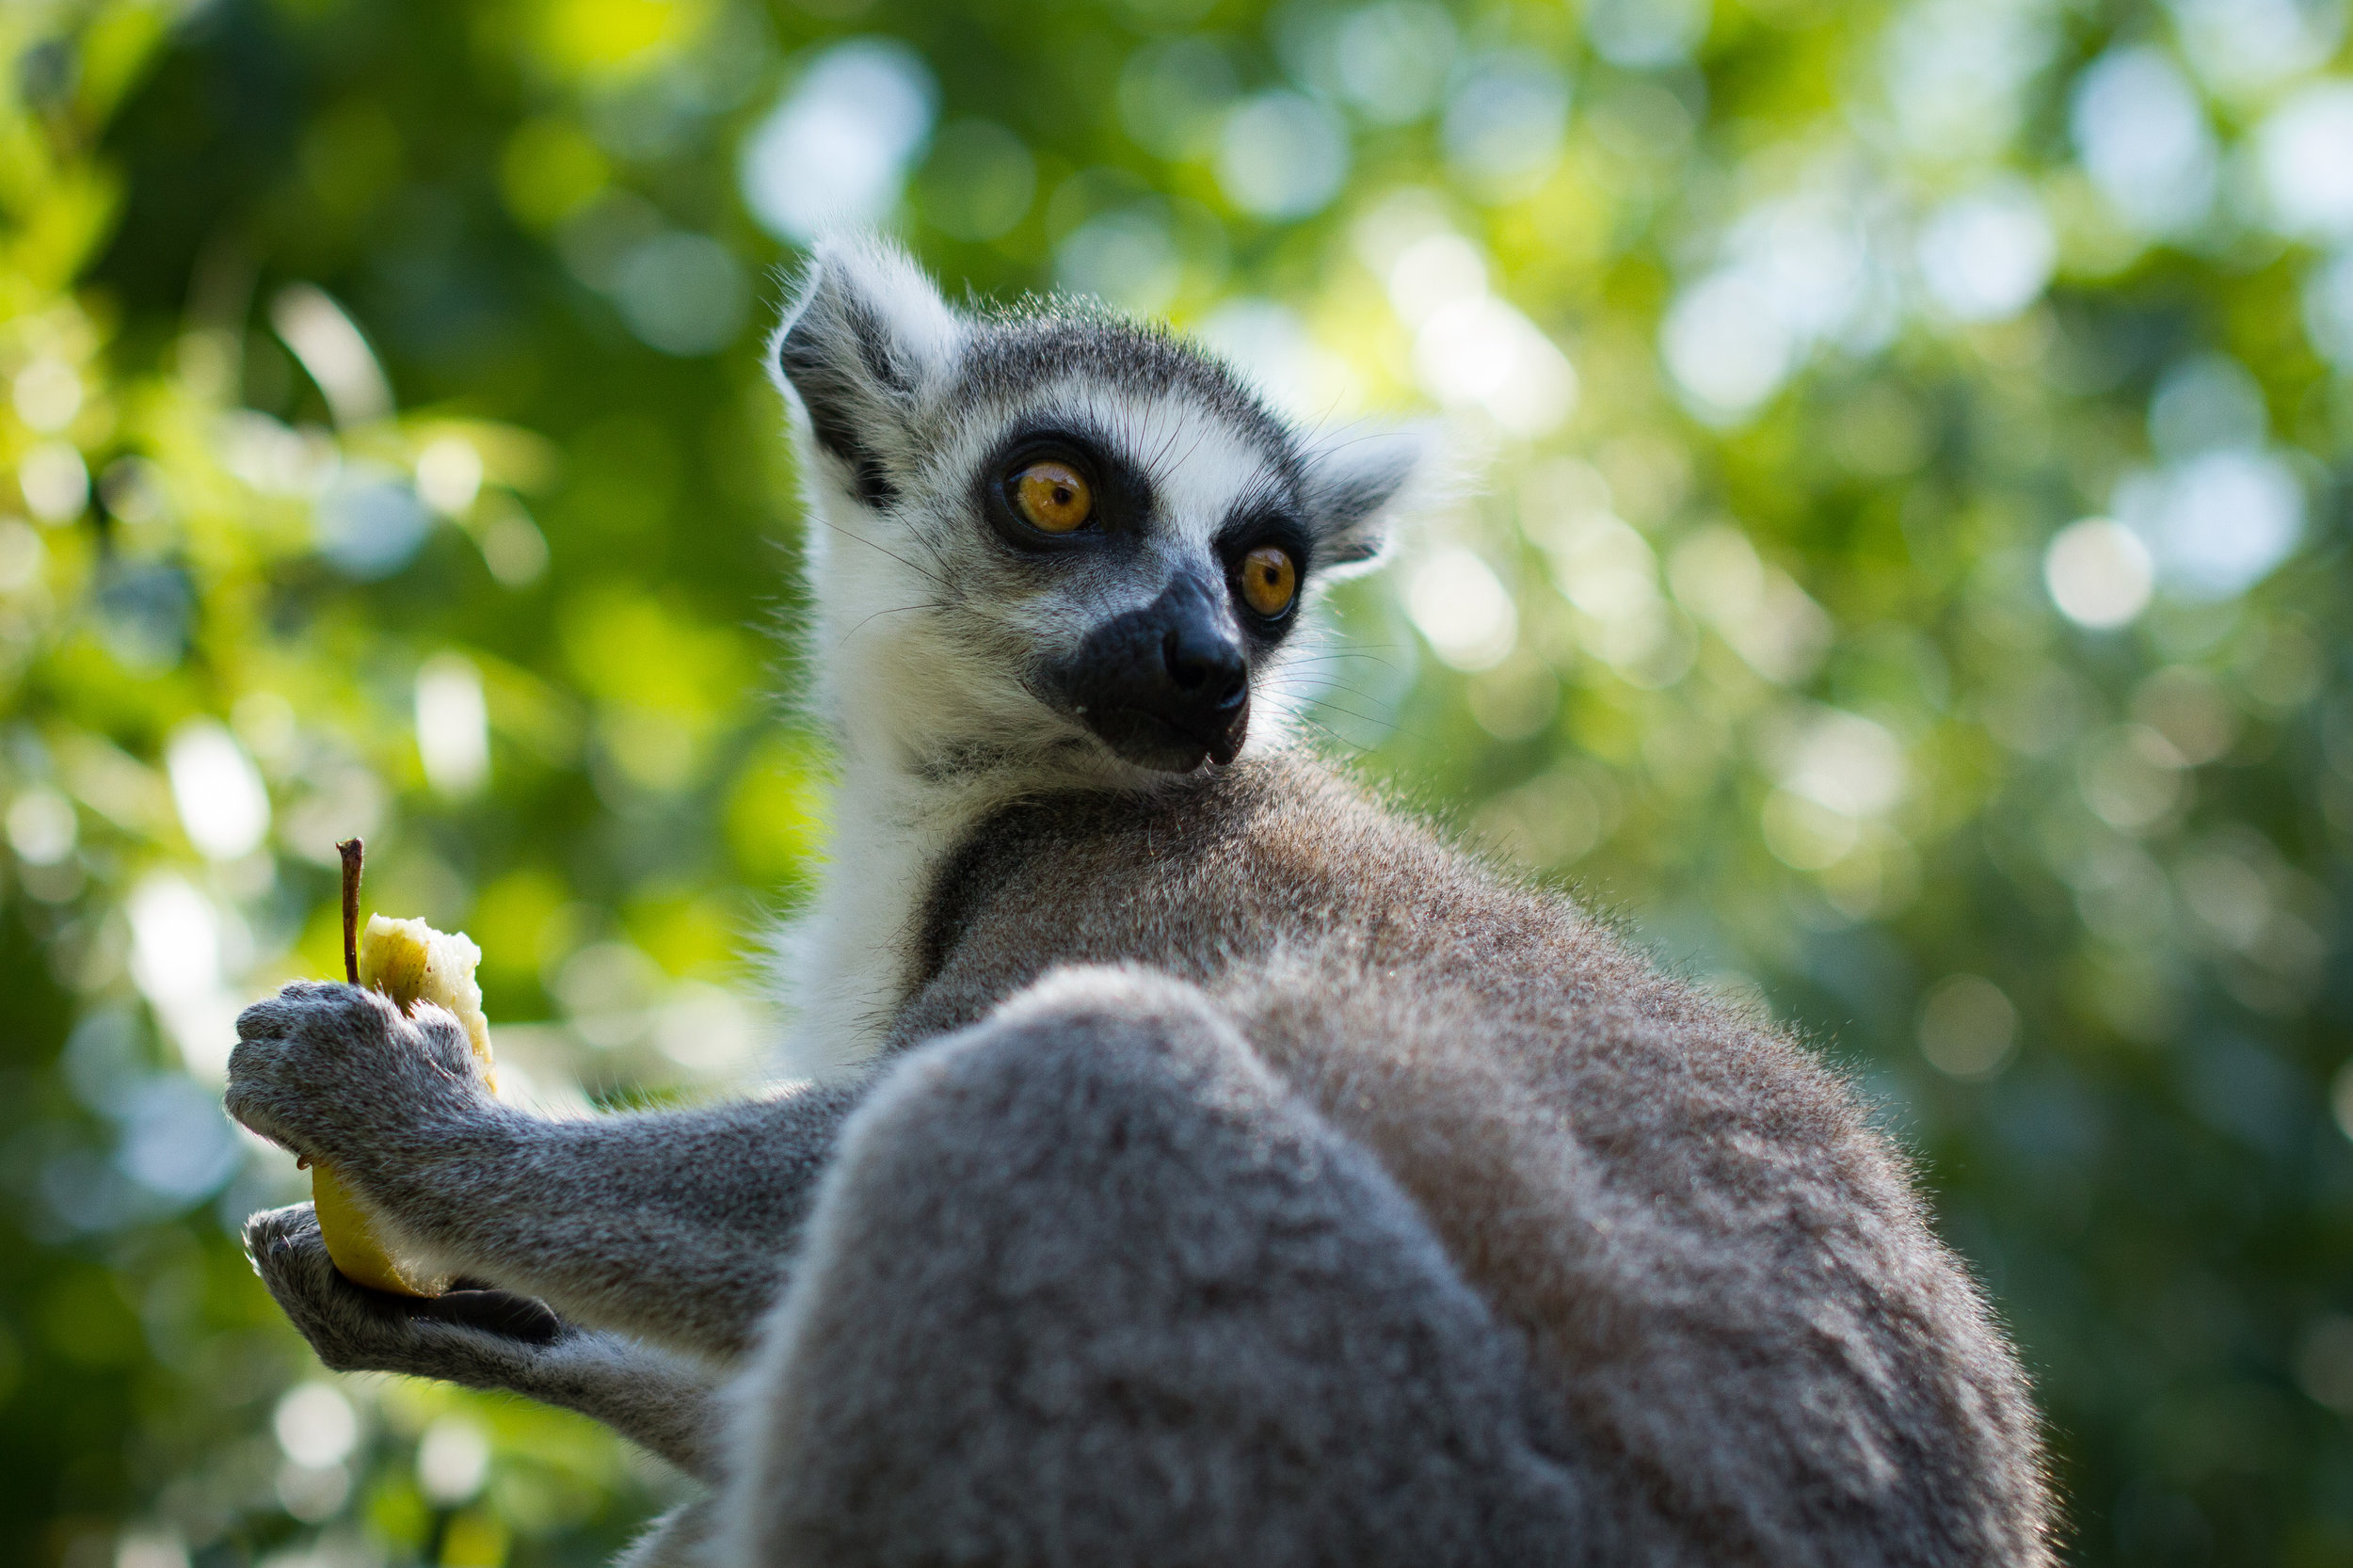 Lemurs and Beaches in Madagascar - Madagascar is easily one of the most far-flung destinations on the globe. This is a remote land where lemurs dance through lush rainforests, electric orange chameleons prowl along prickly branches, opportunities abound to get the perfect shot of a baobab tree at sunset, sundowner in hand, enjoying authentic dancing and singing with the local tribes around a raging fire.